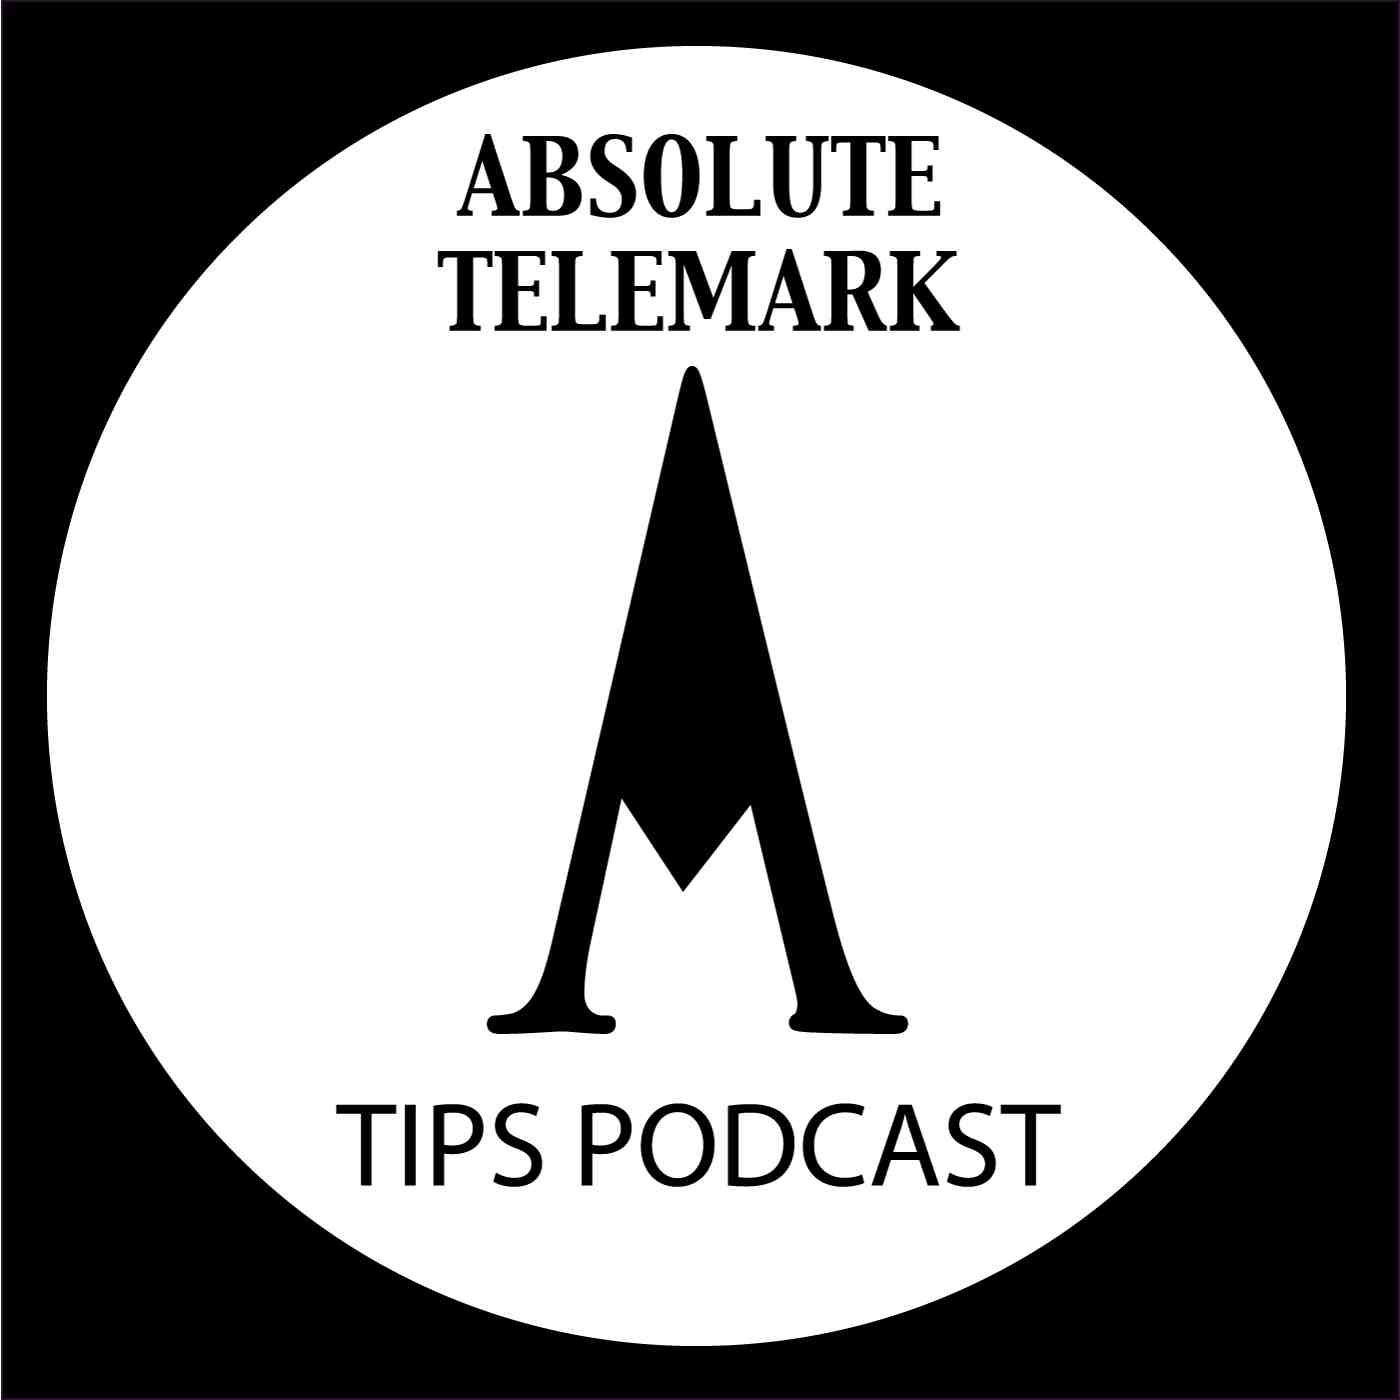 Absolute Telemark Tips Podcast show art